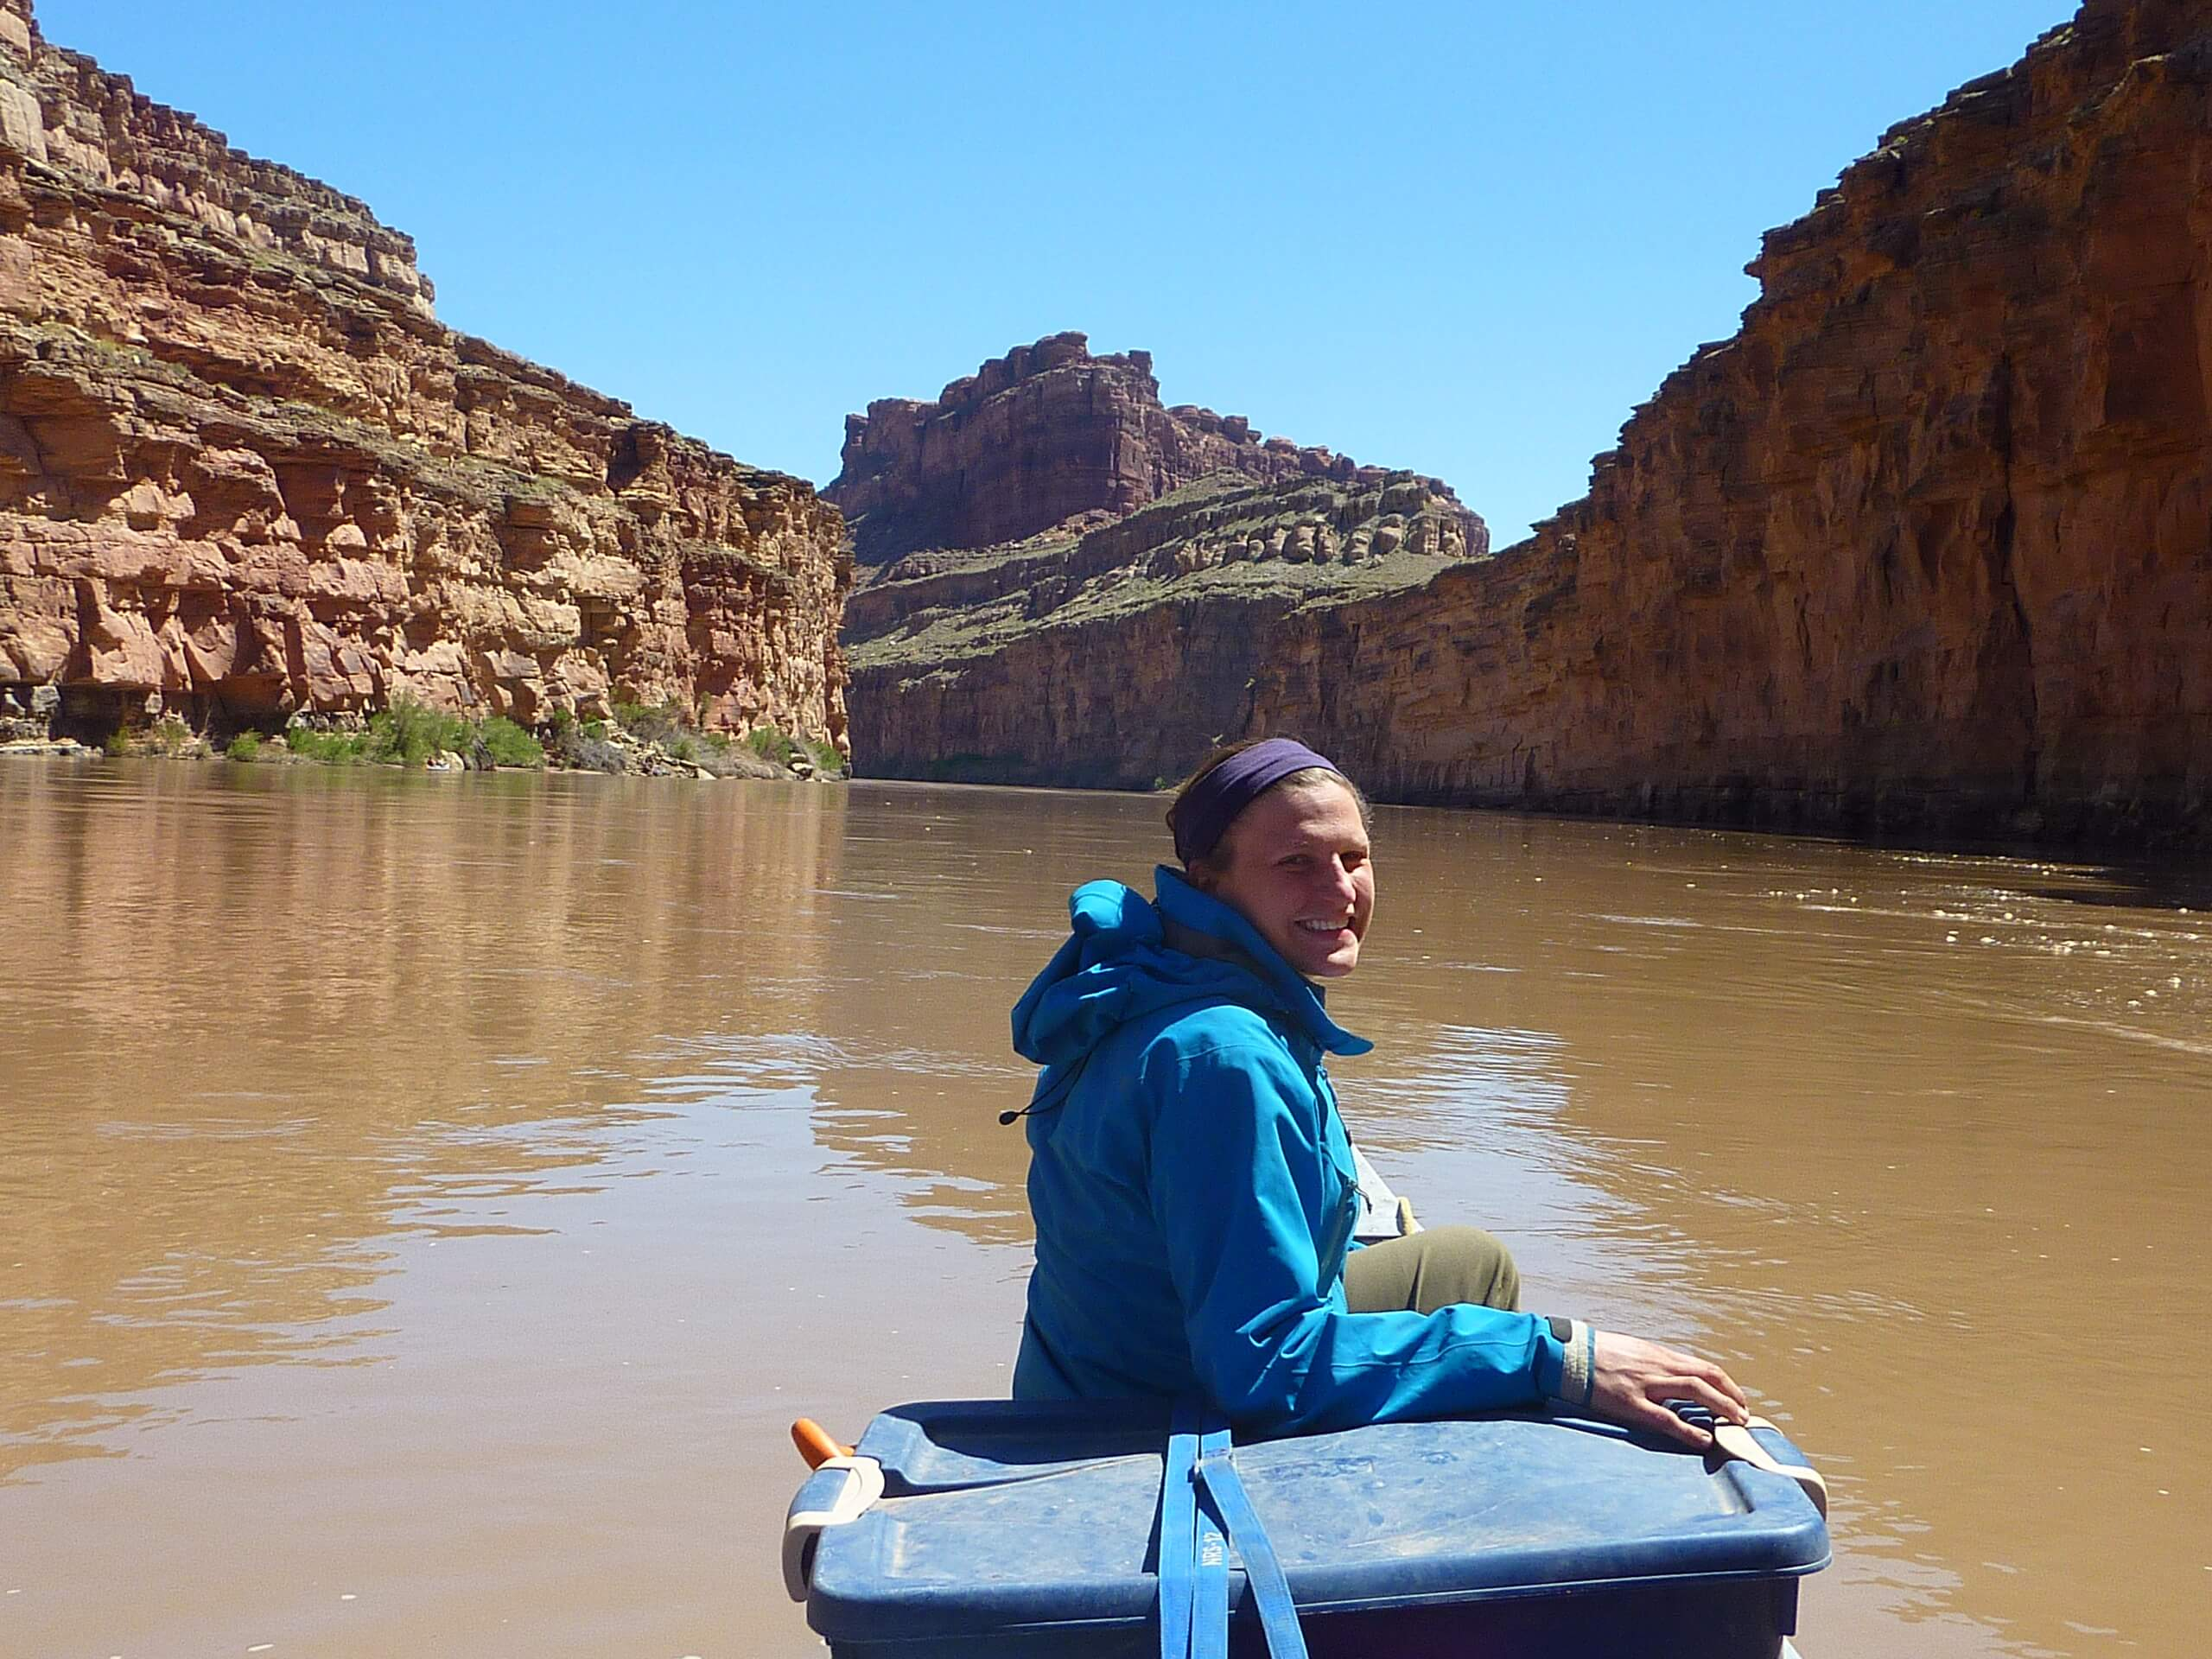 Canoeing the Colorado River with Wisconsin Canoe Company